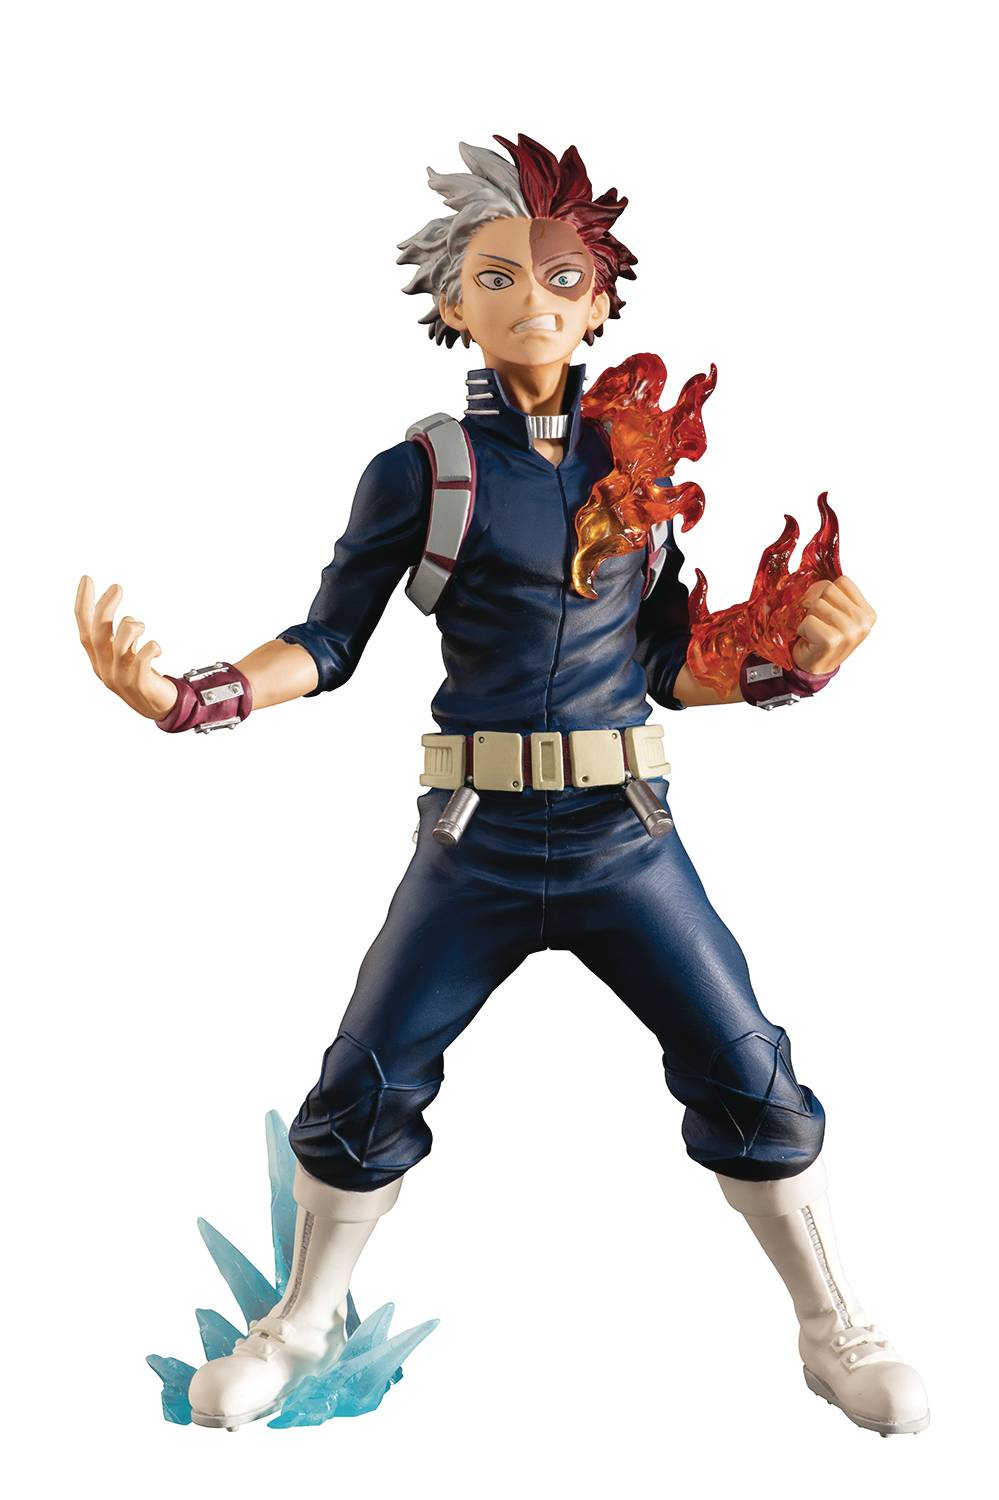 MY HERO ACADEMIA NEXT GEN SHOTO TODOROKI ICHIBAN FIG (NET) (